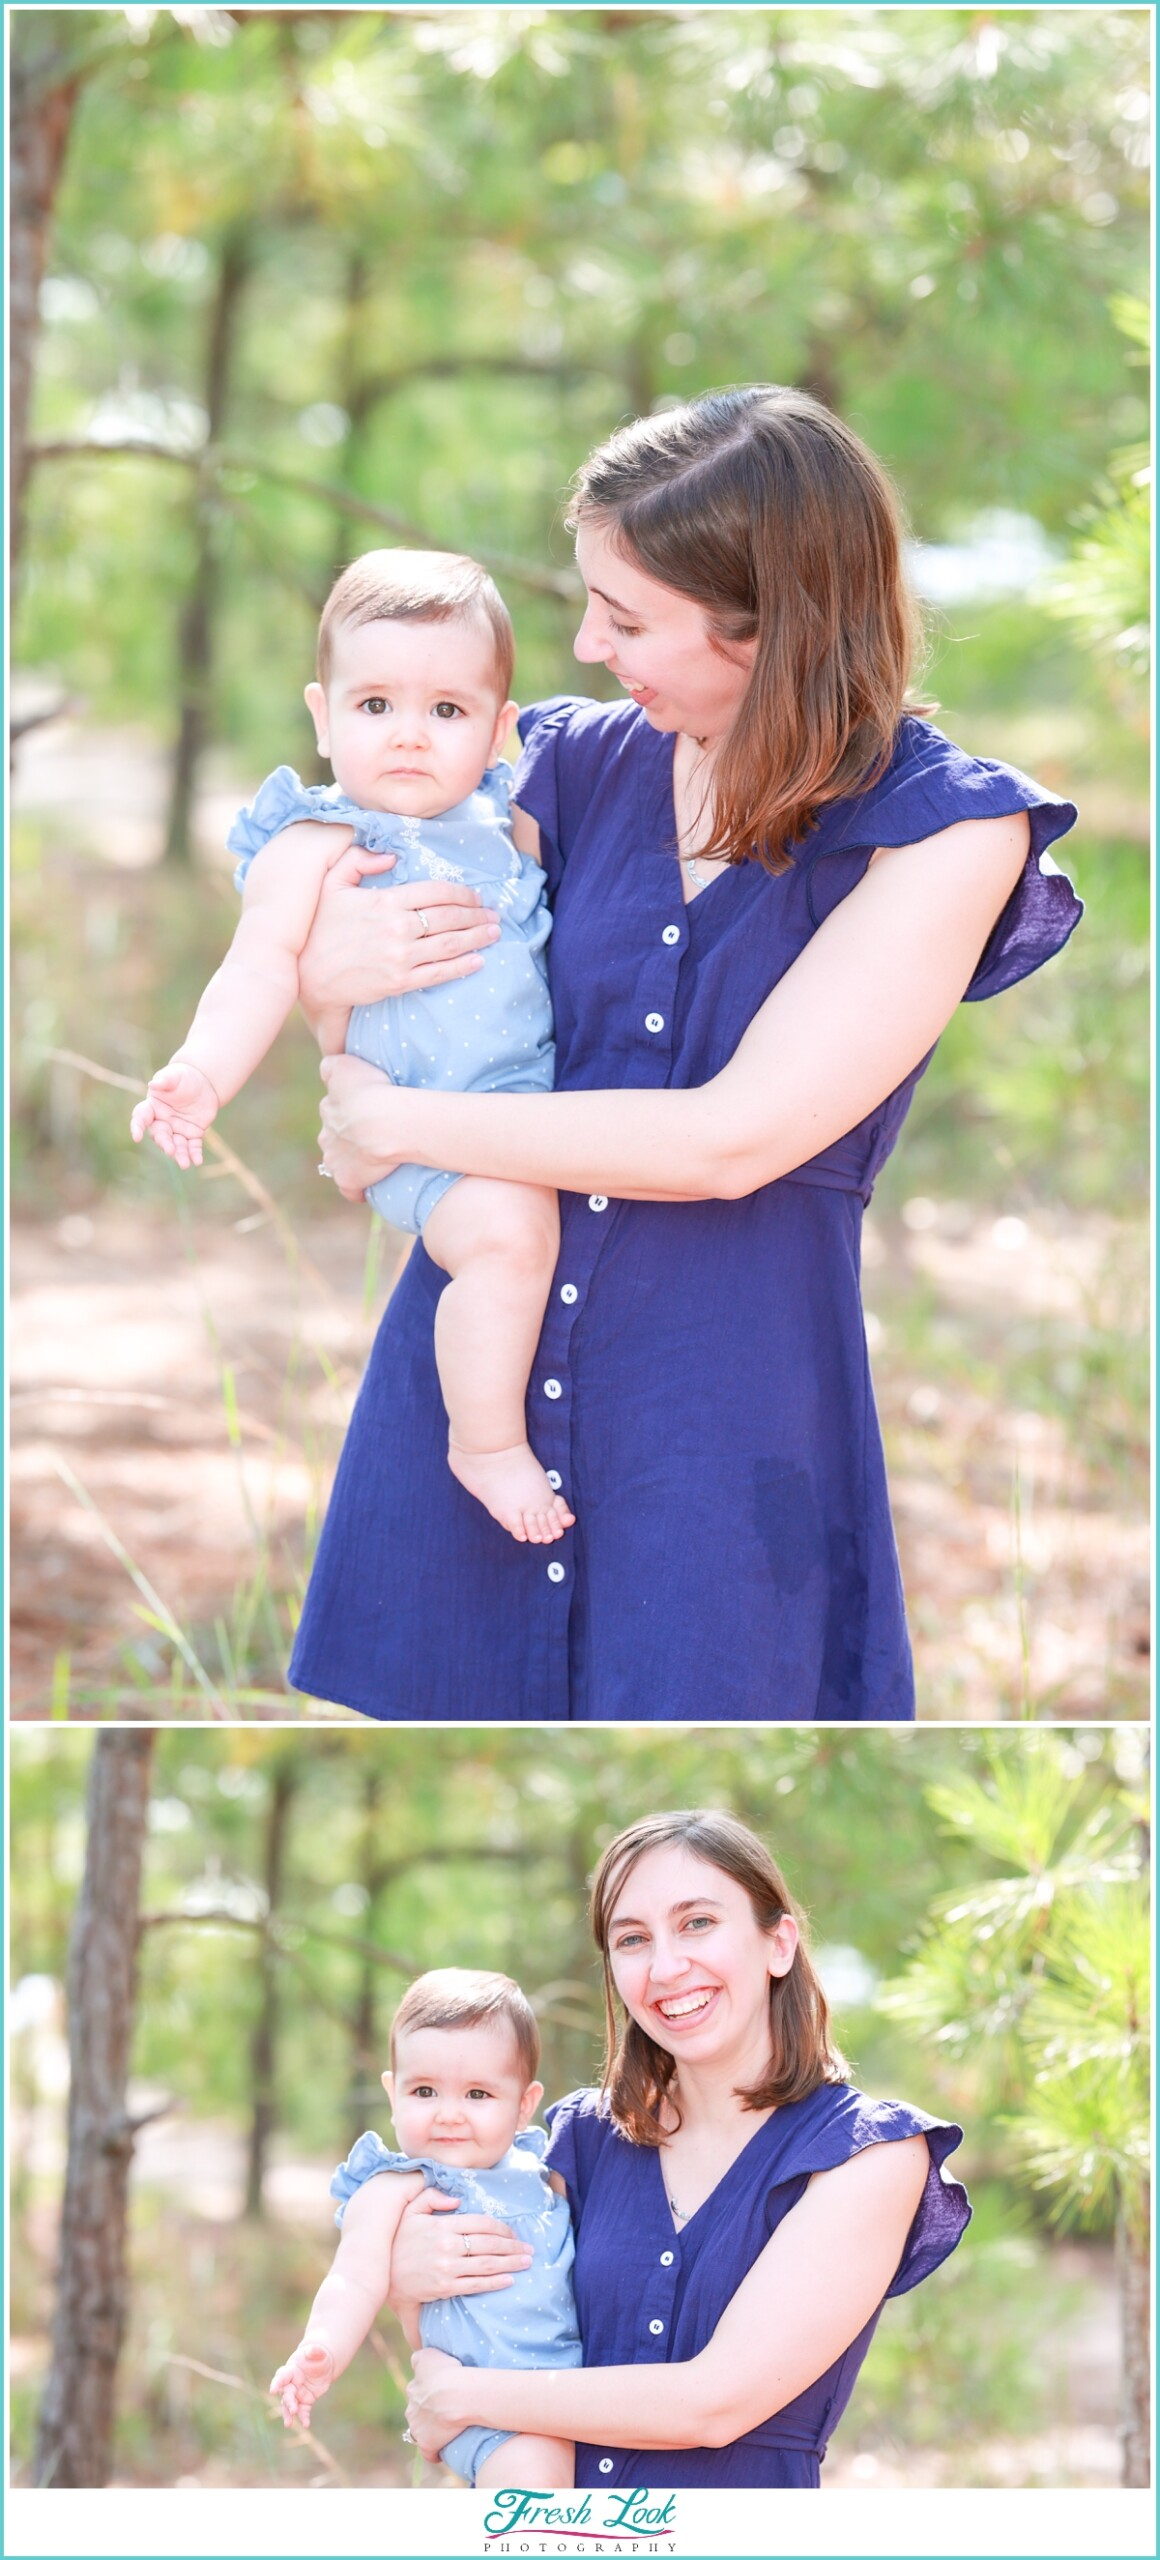 Woodsy Mother and Daughter Photoshoot